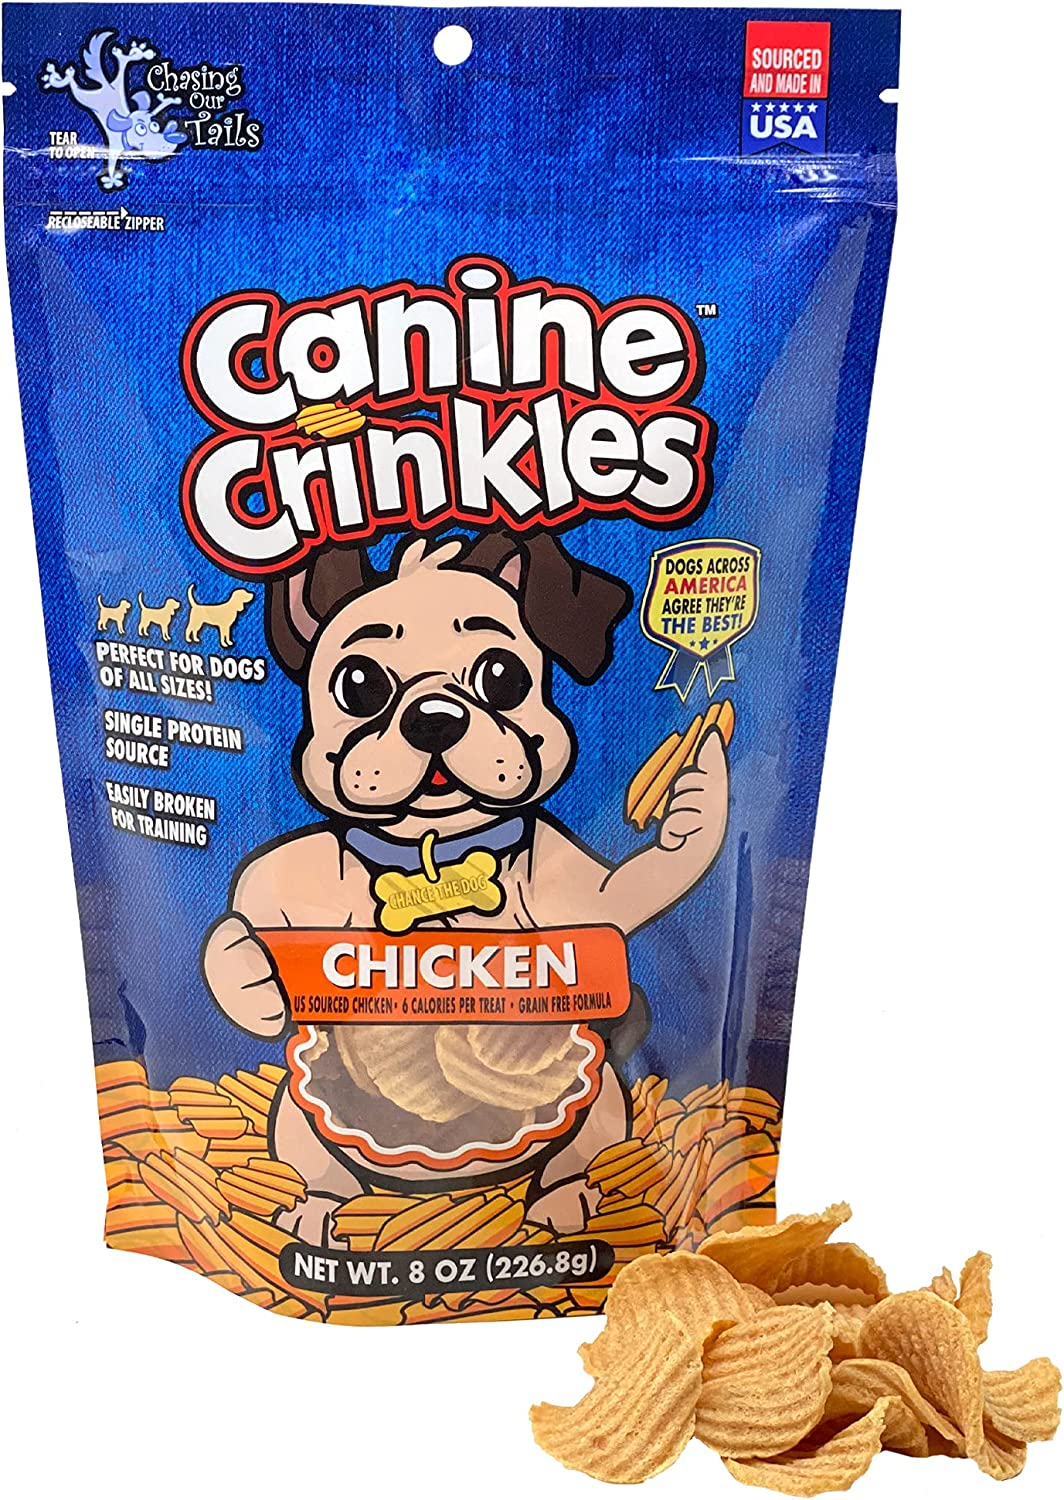 Canine Crinkles Chicken Chips Award-winning store for Dogs price - Chick Dehydrated Crispy